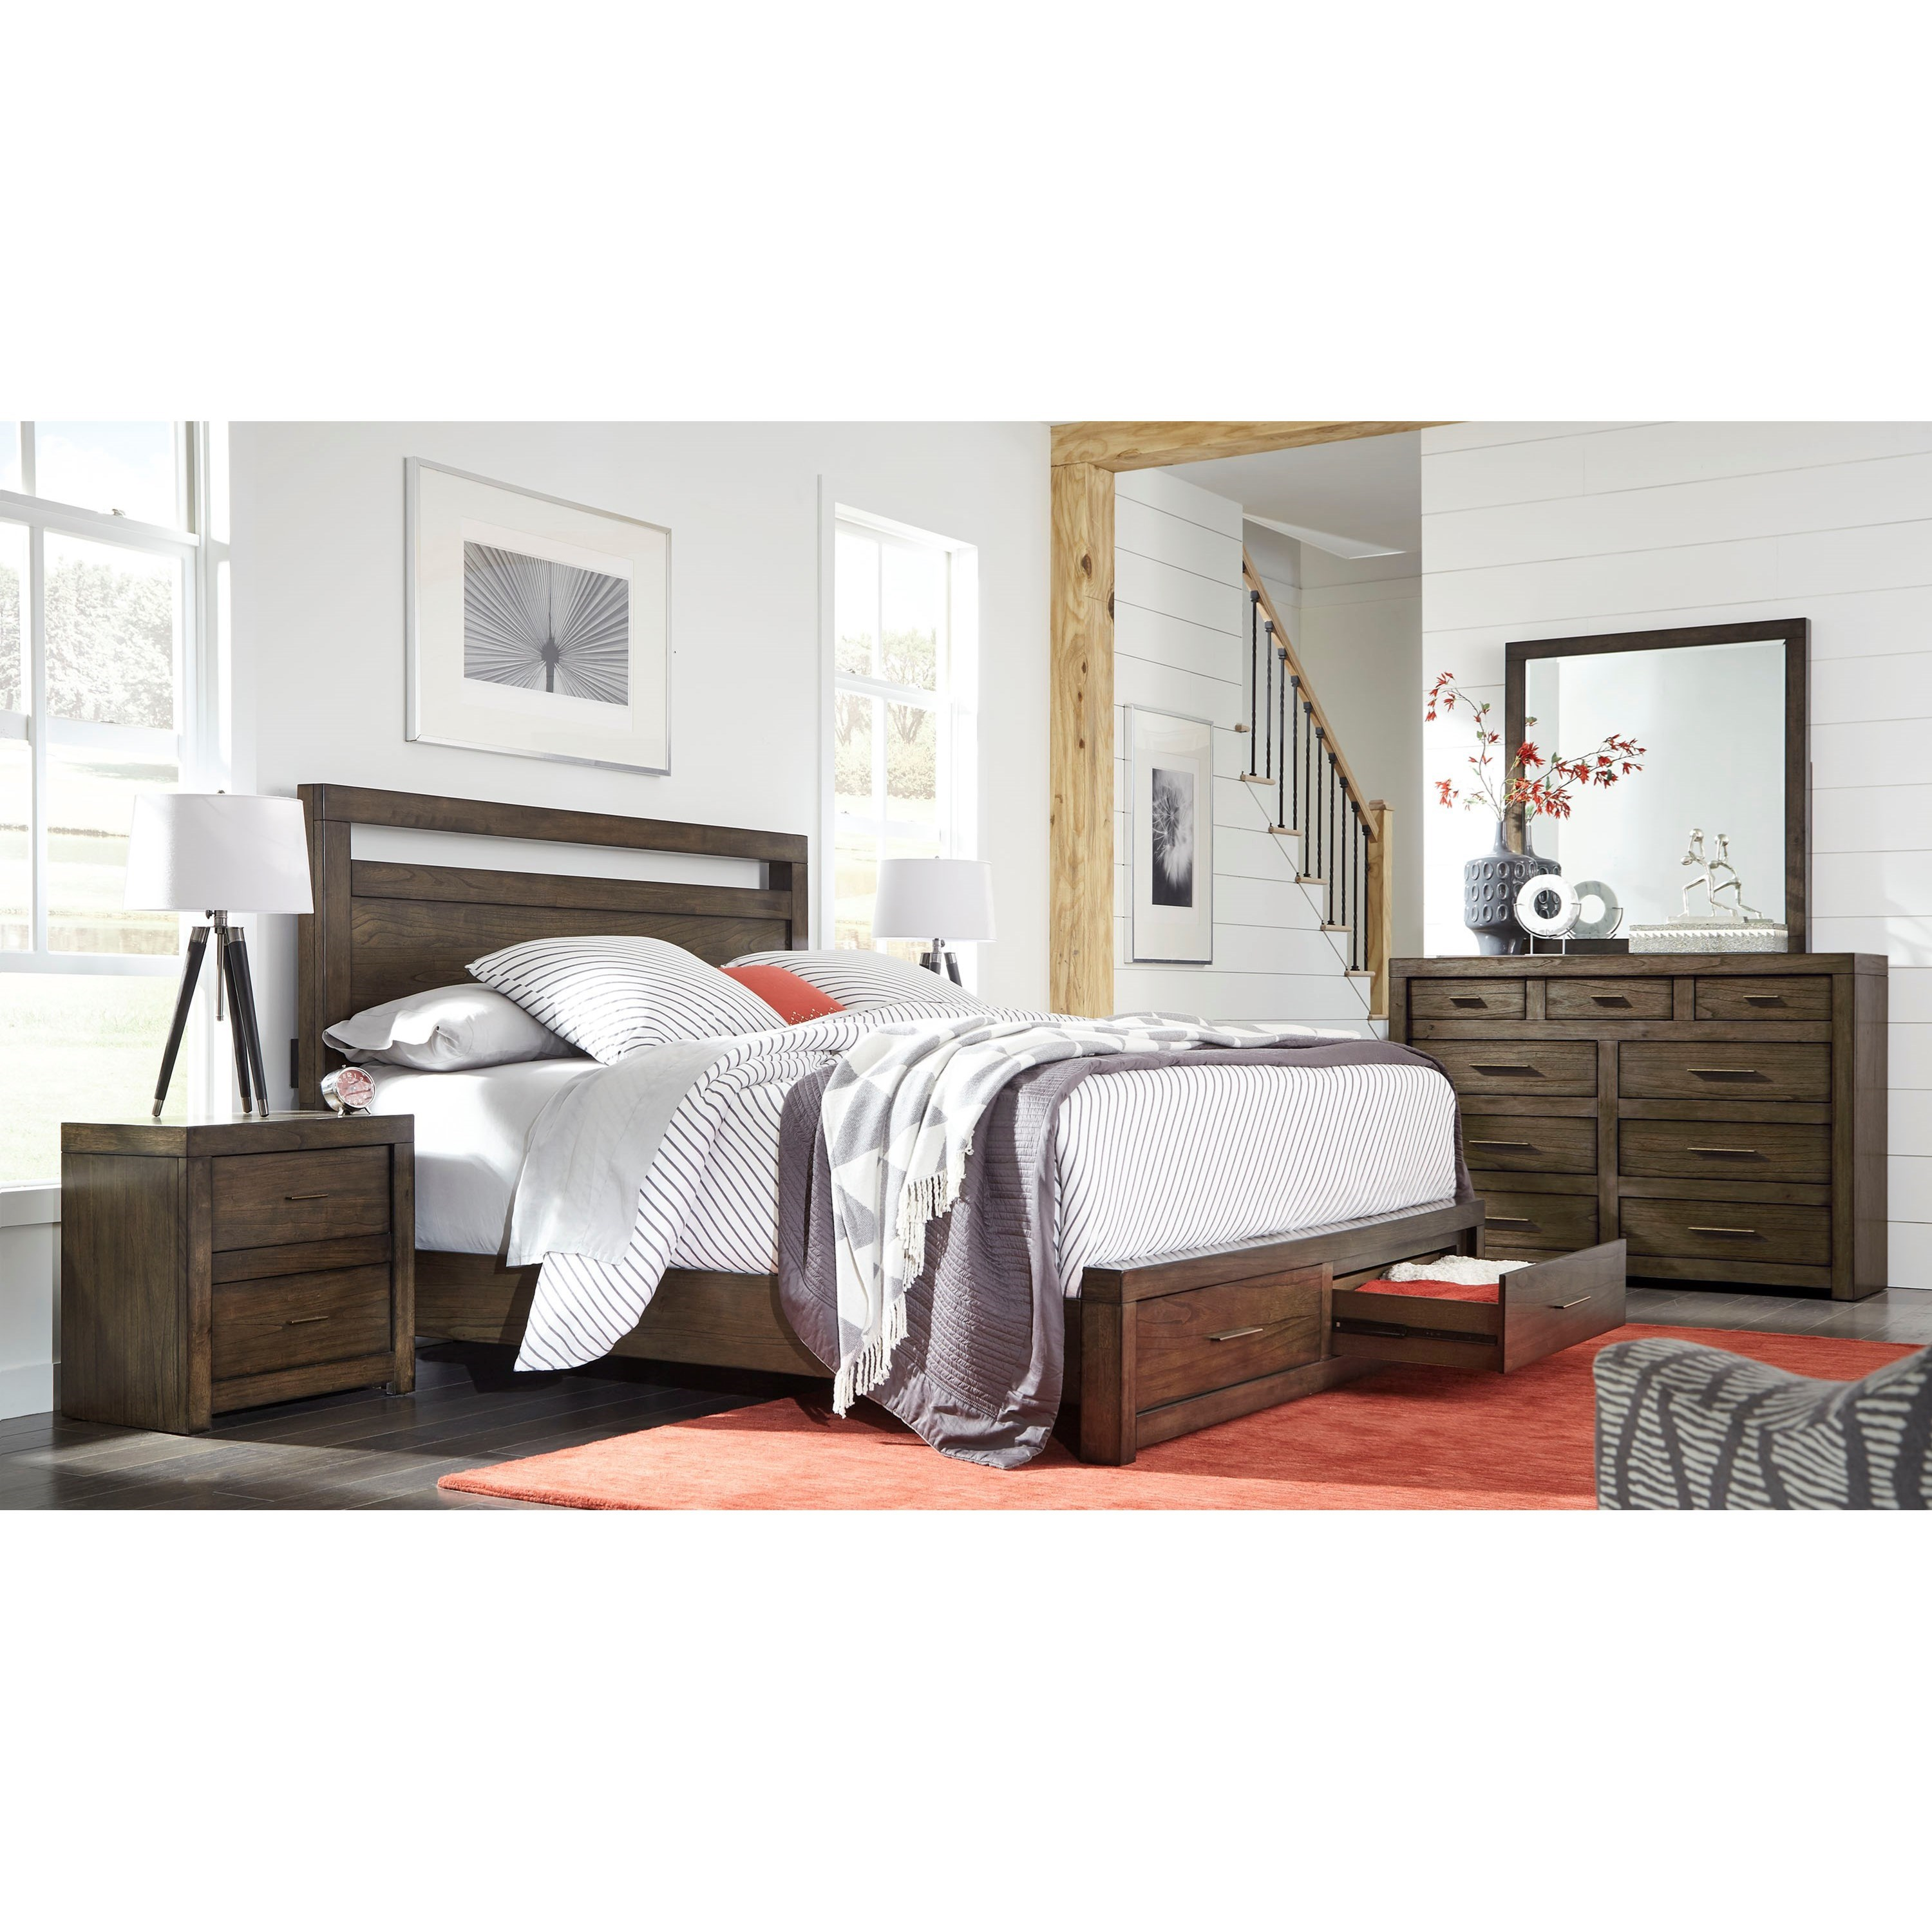 Modern Loft King Bedroom Group by Aspenhome at Stoney Creek Furniture